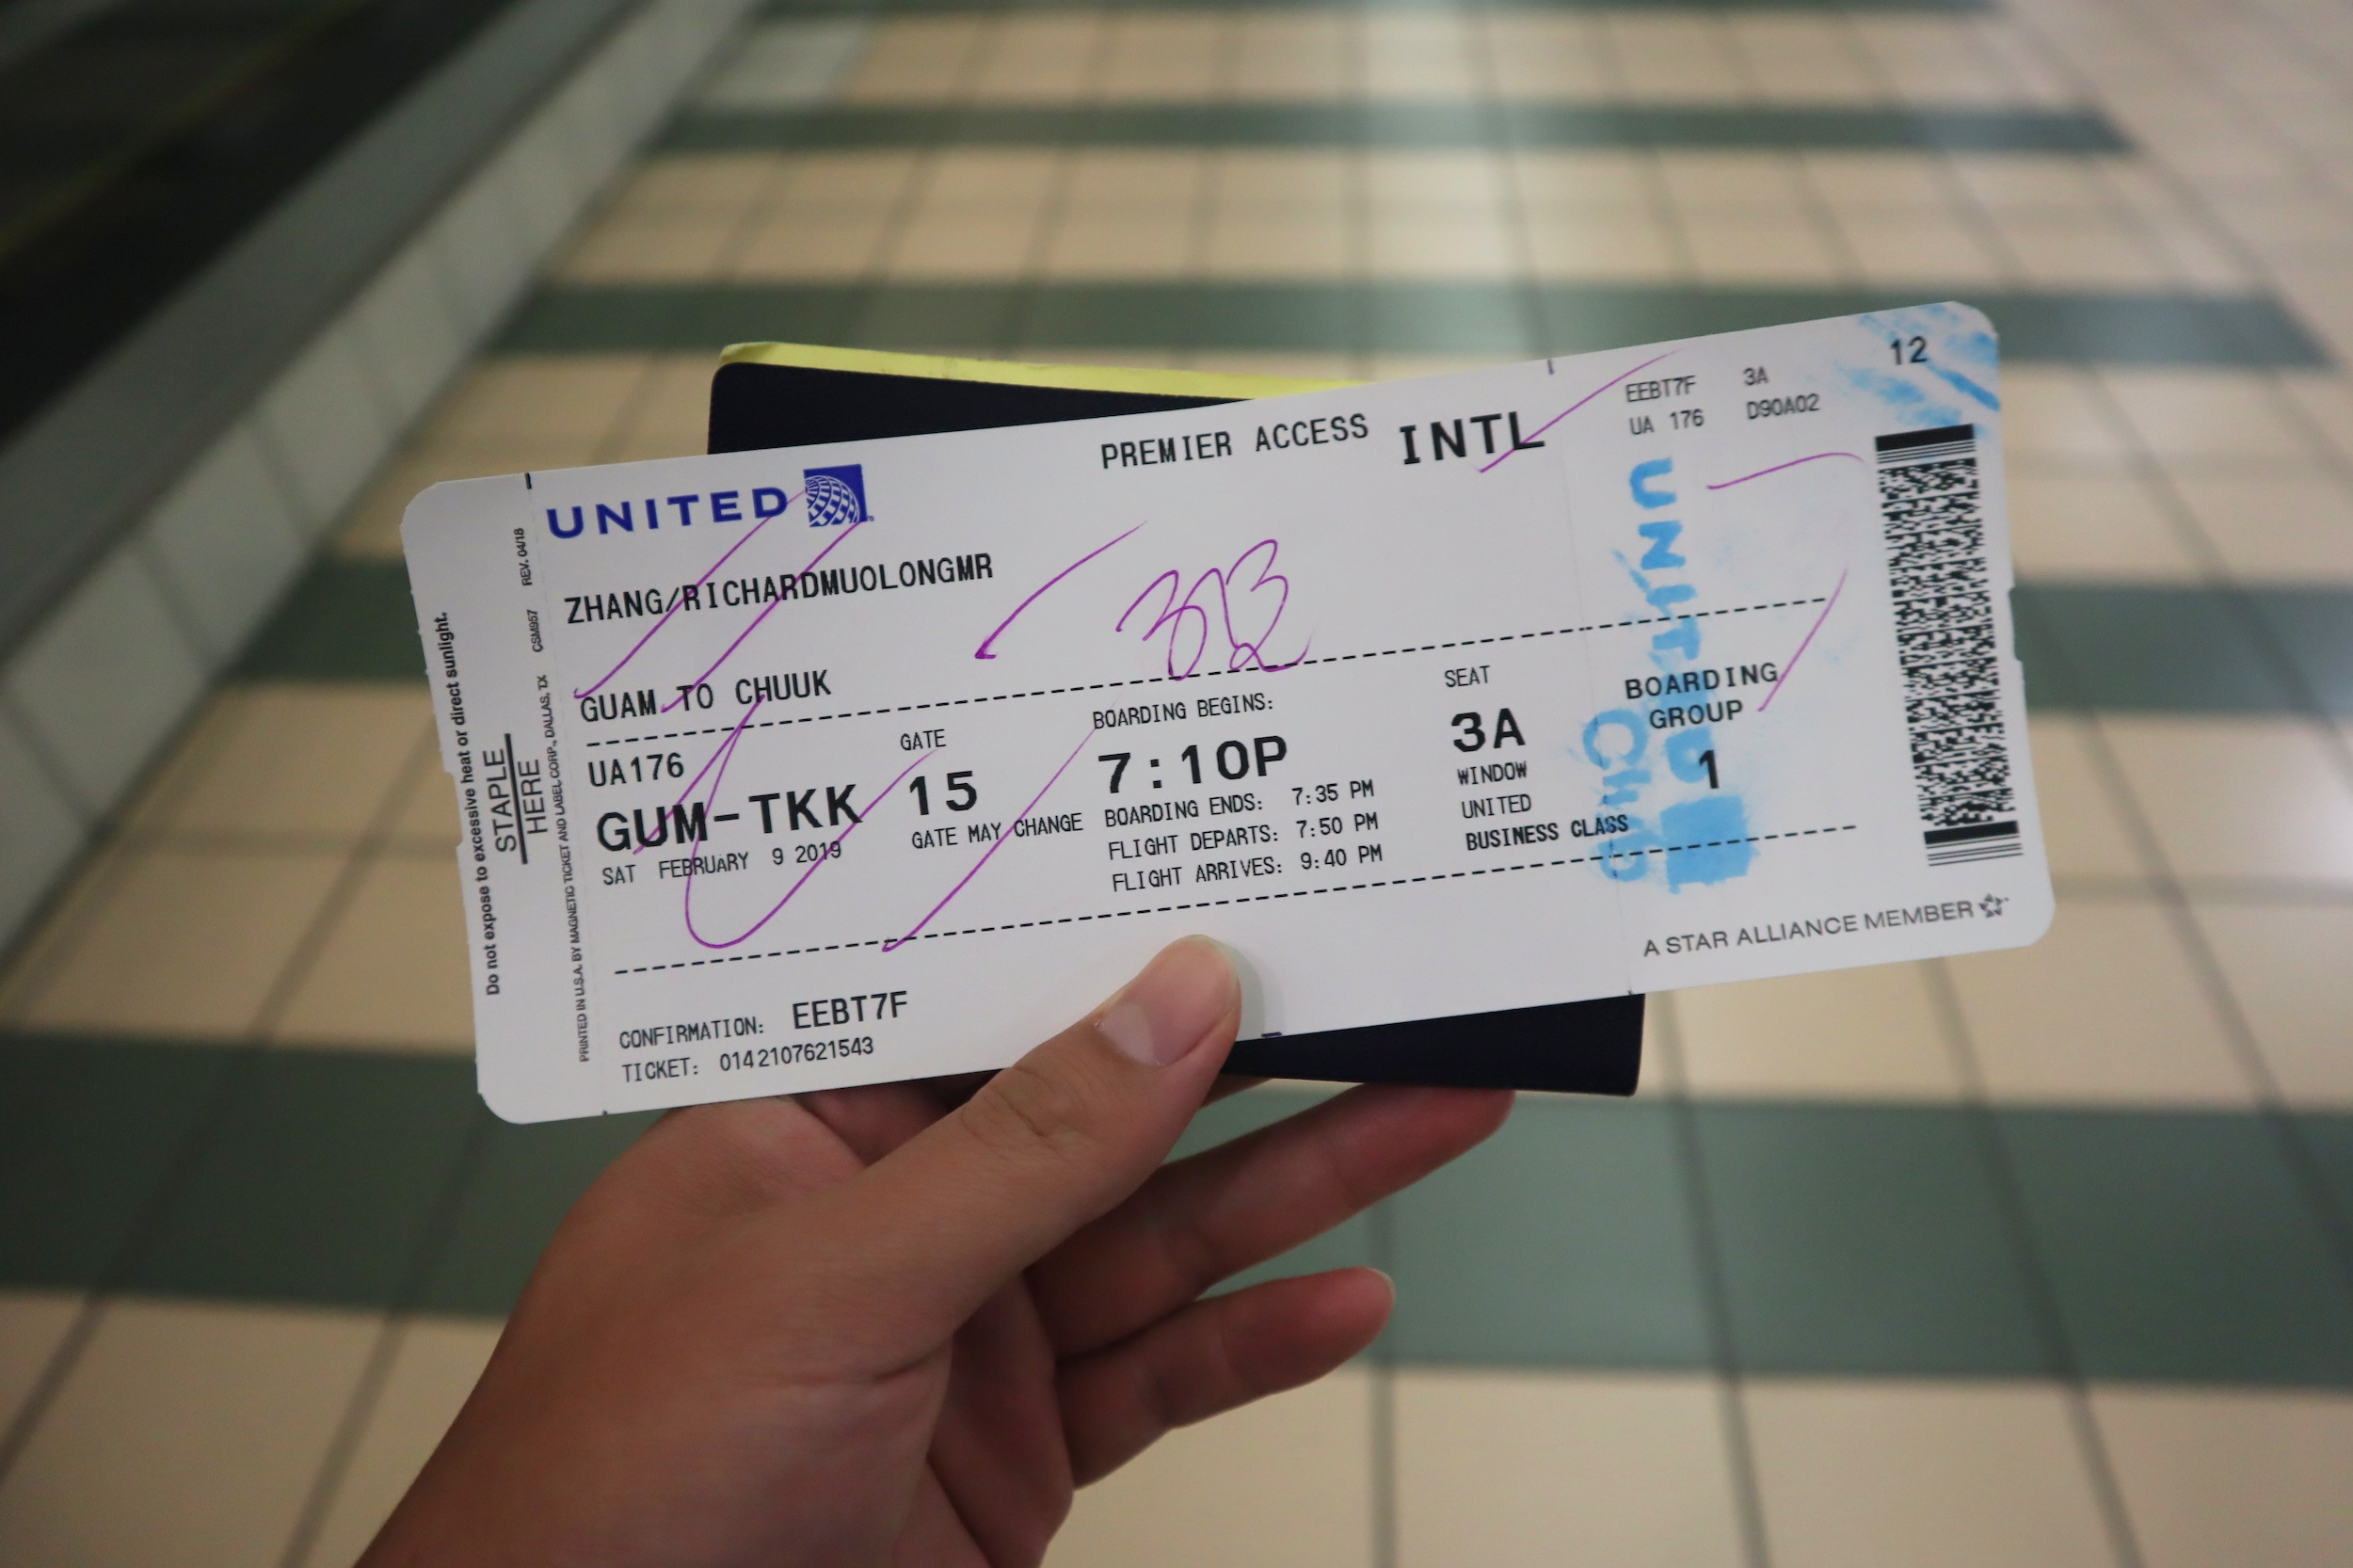 Boarding pass to Chuuk